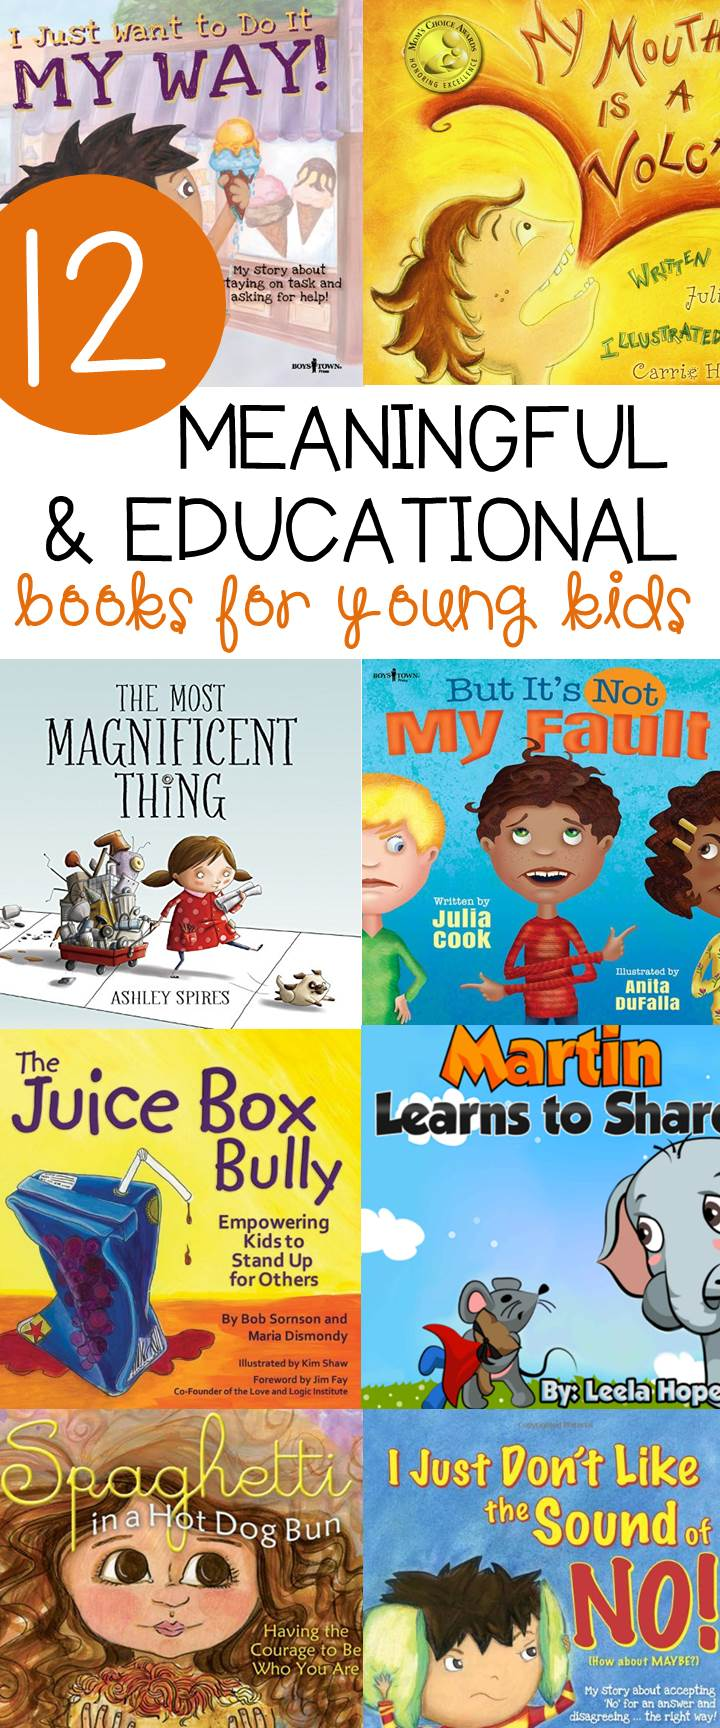 This list of meaningful and educational books for kids make great read alouds for teaching social skills, manners, and more!